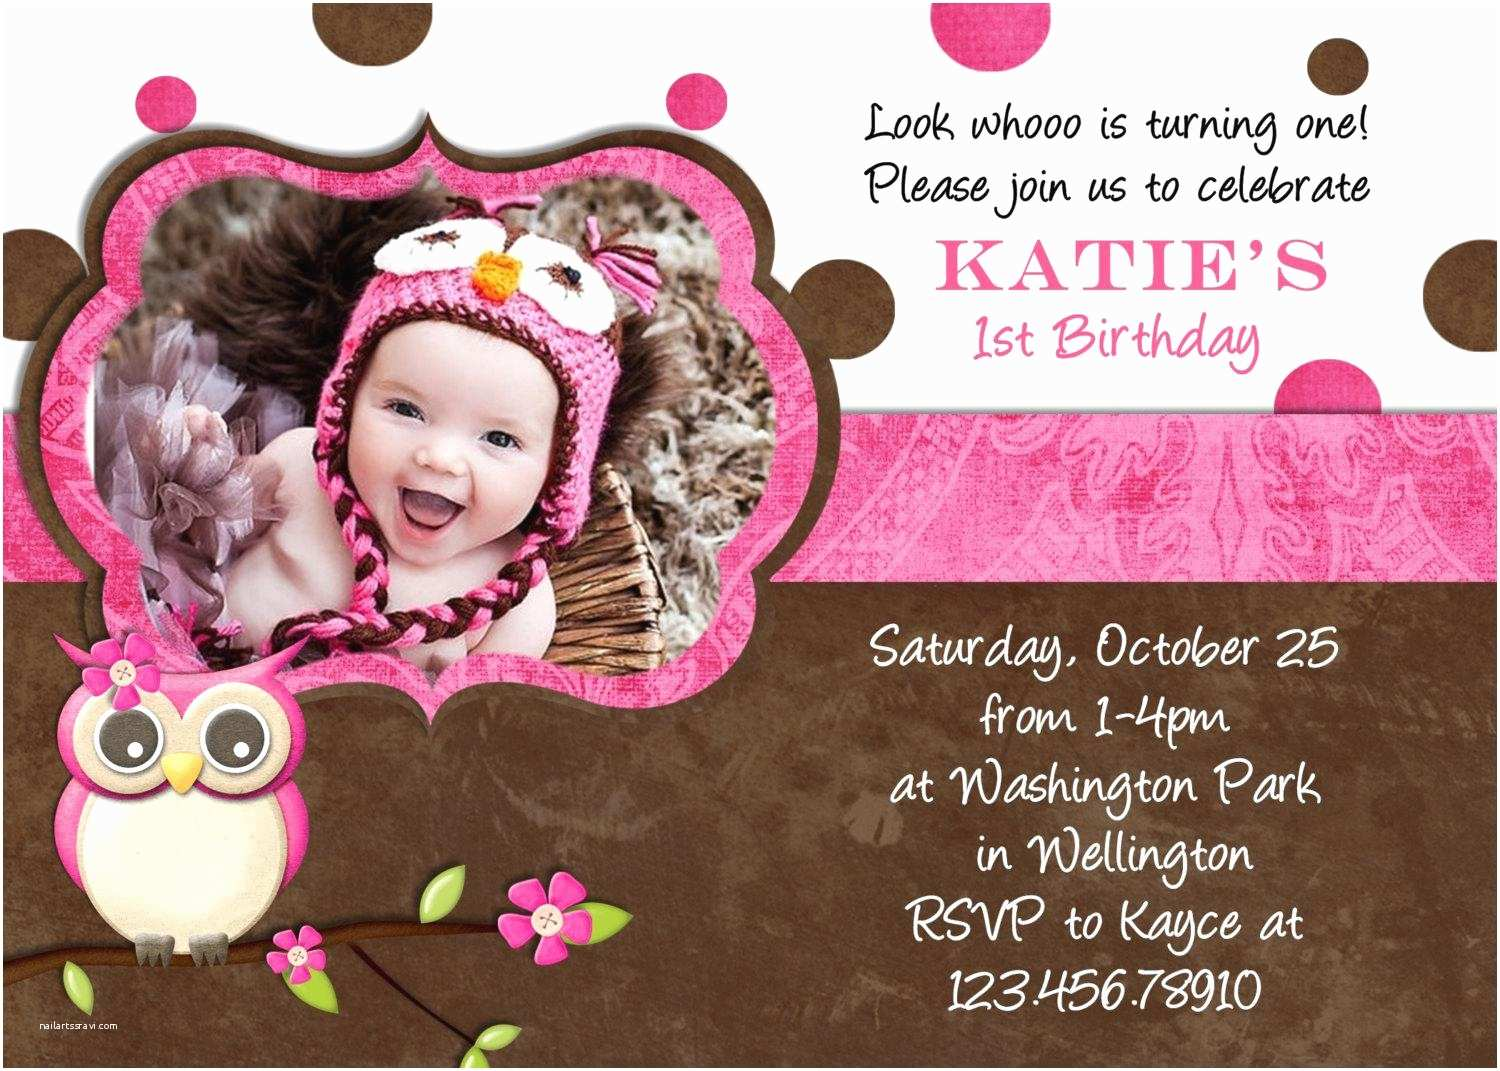 Birthday Invitation Cards 20 Birthday Invitations Cards – Sample Wording Printable